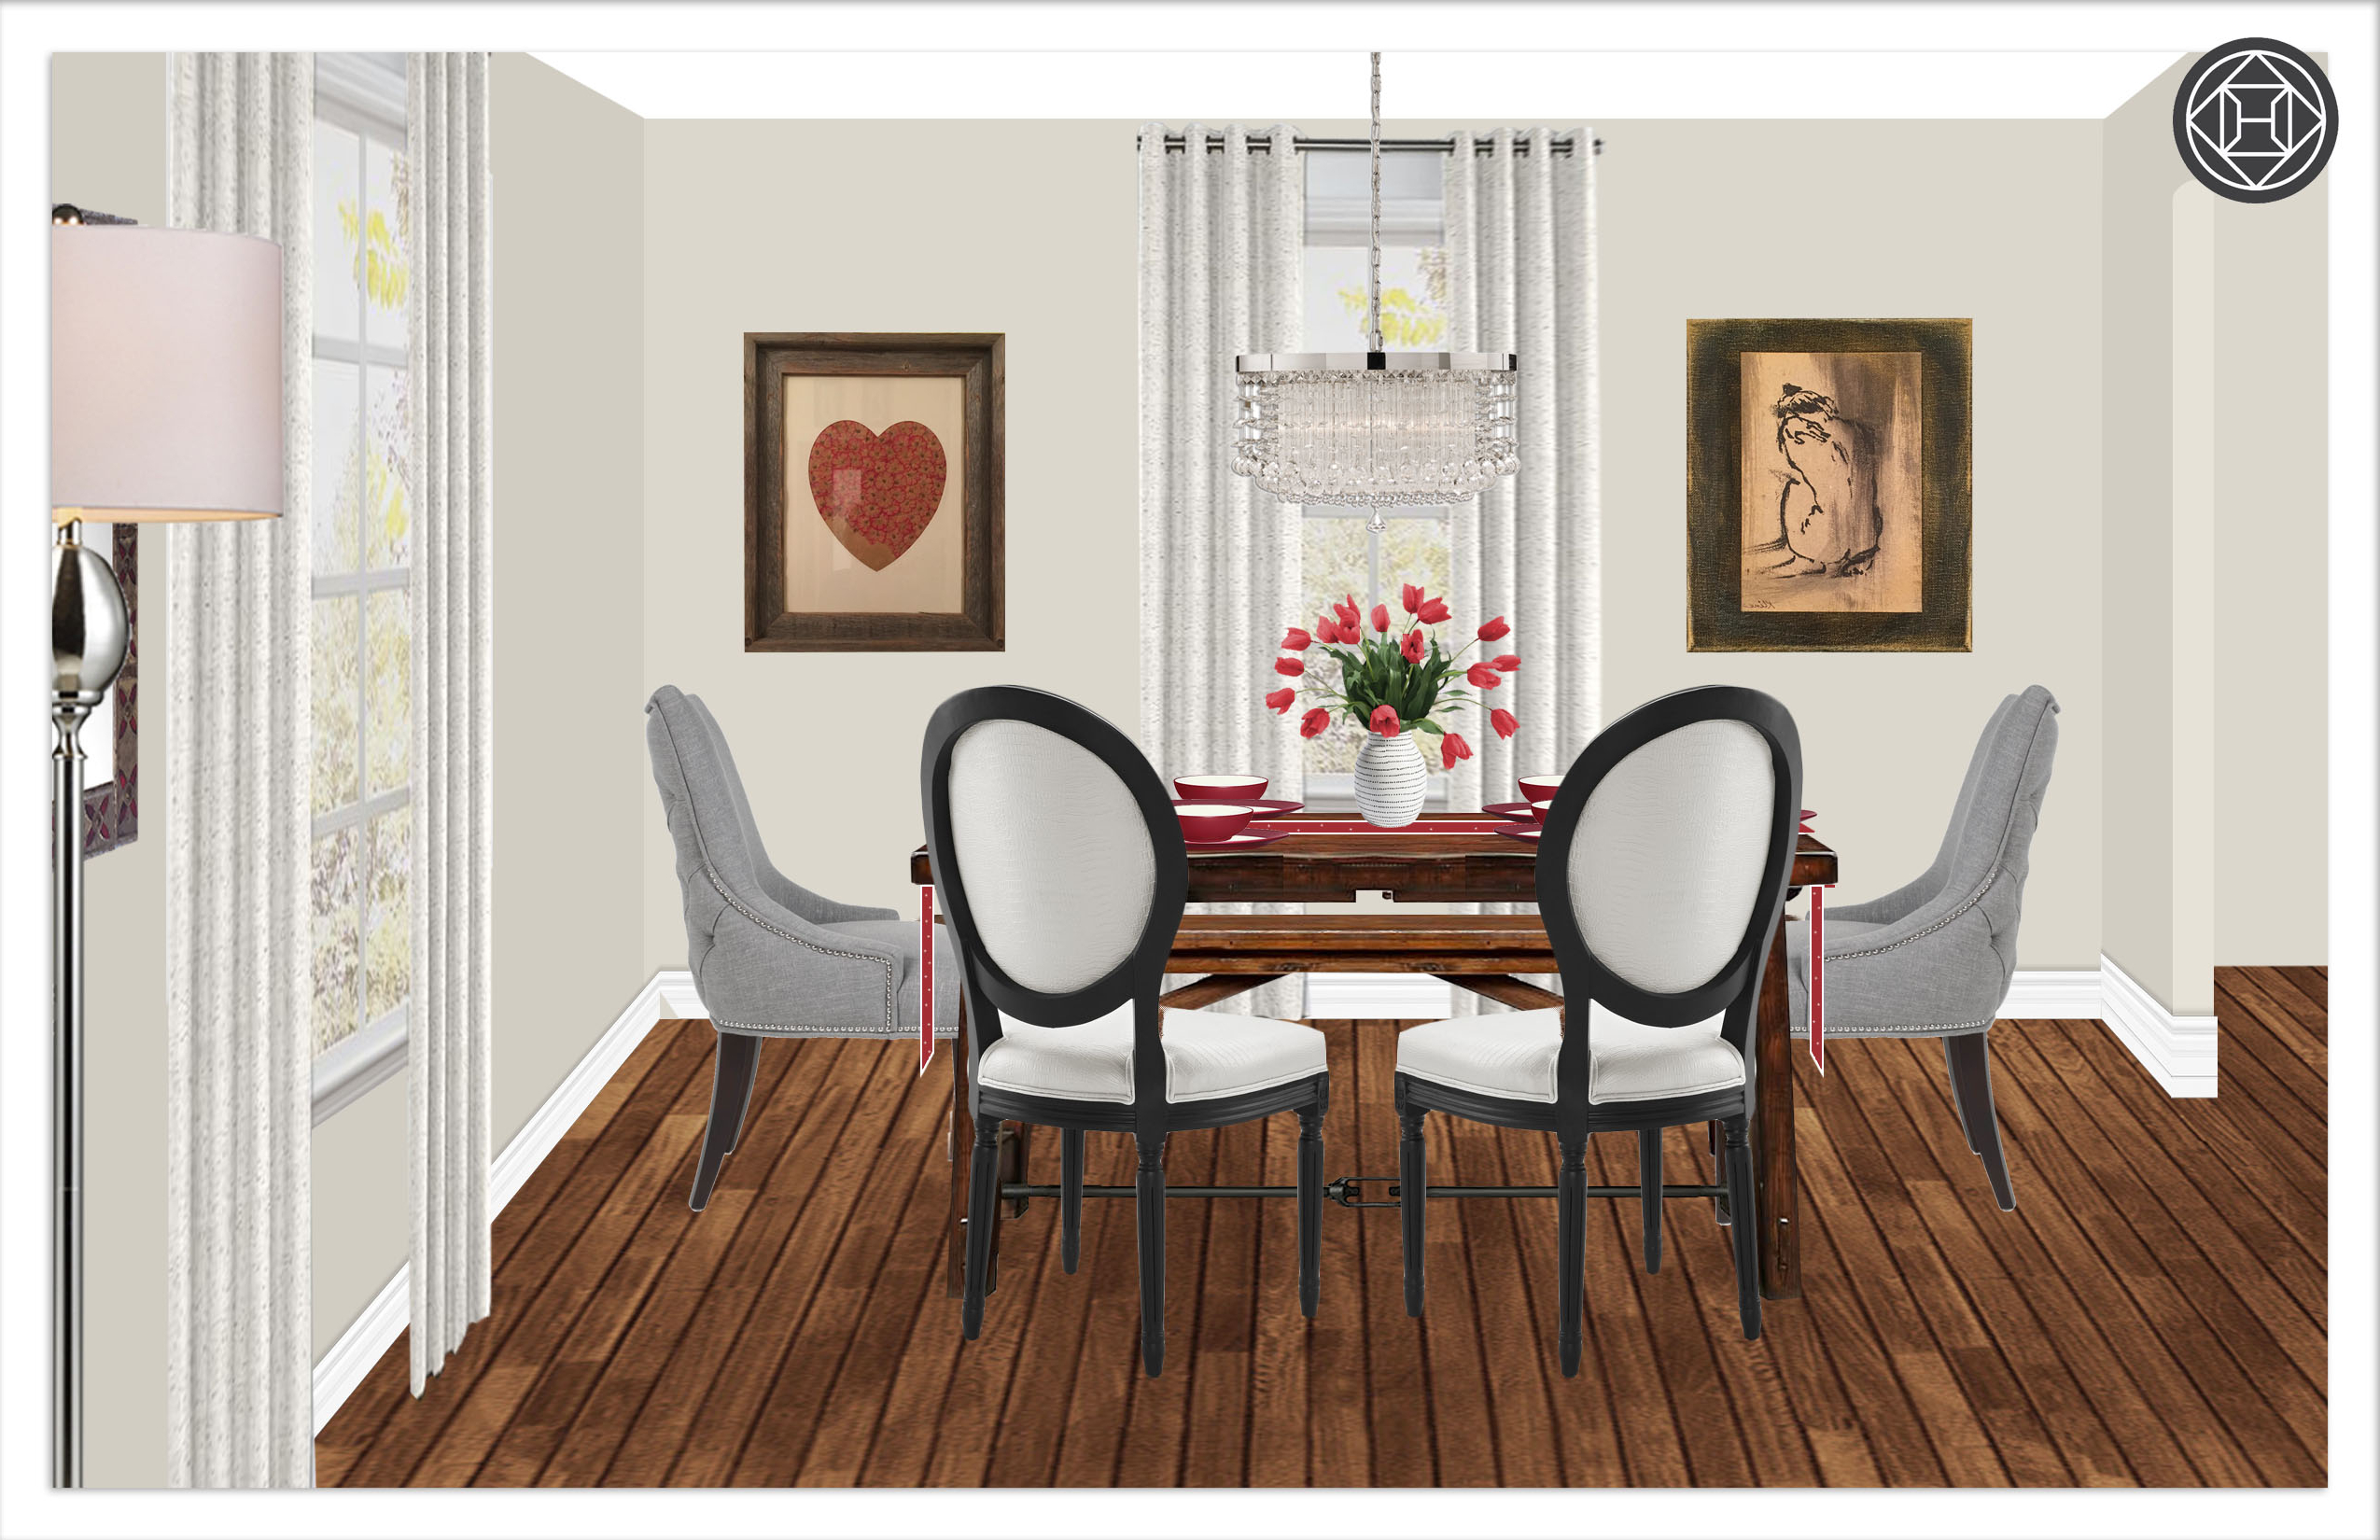 Newest Contemporary, Classic, Eclectic, Rustic Dining Room Design Pertaining To Tuscan Chestnut Toscana Dining Tables (View 23 of 25)